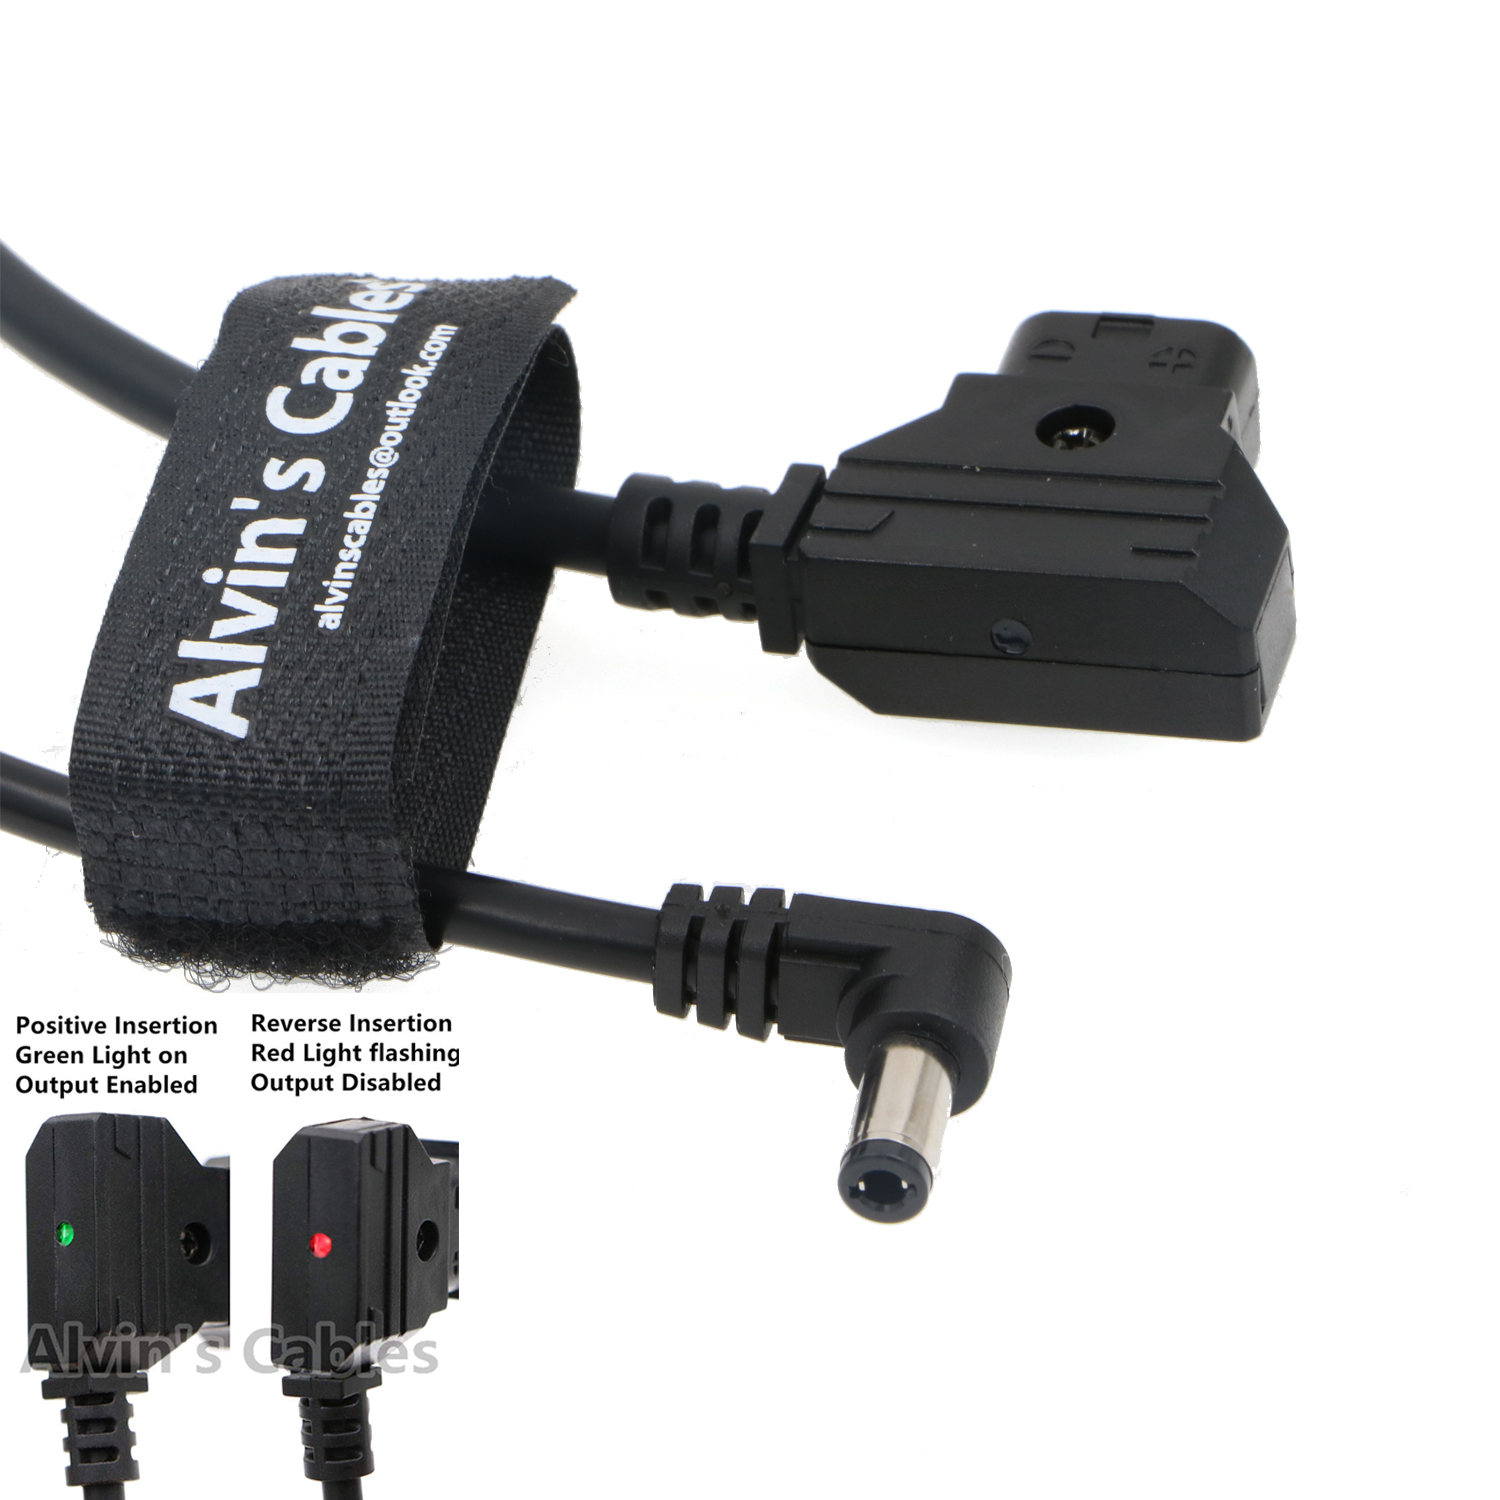 Alvins Cables Anton Bauer Power Tap D-Tap to 2.1 DC Right Angle 12v Cable for KiPRO LCD Monitors 1.5M